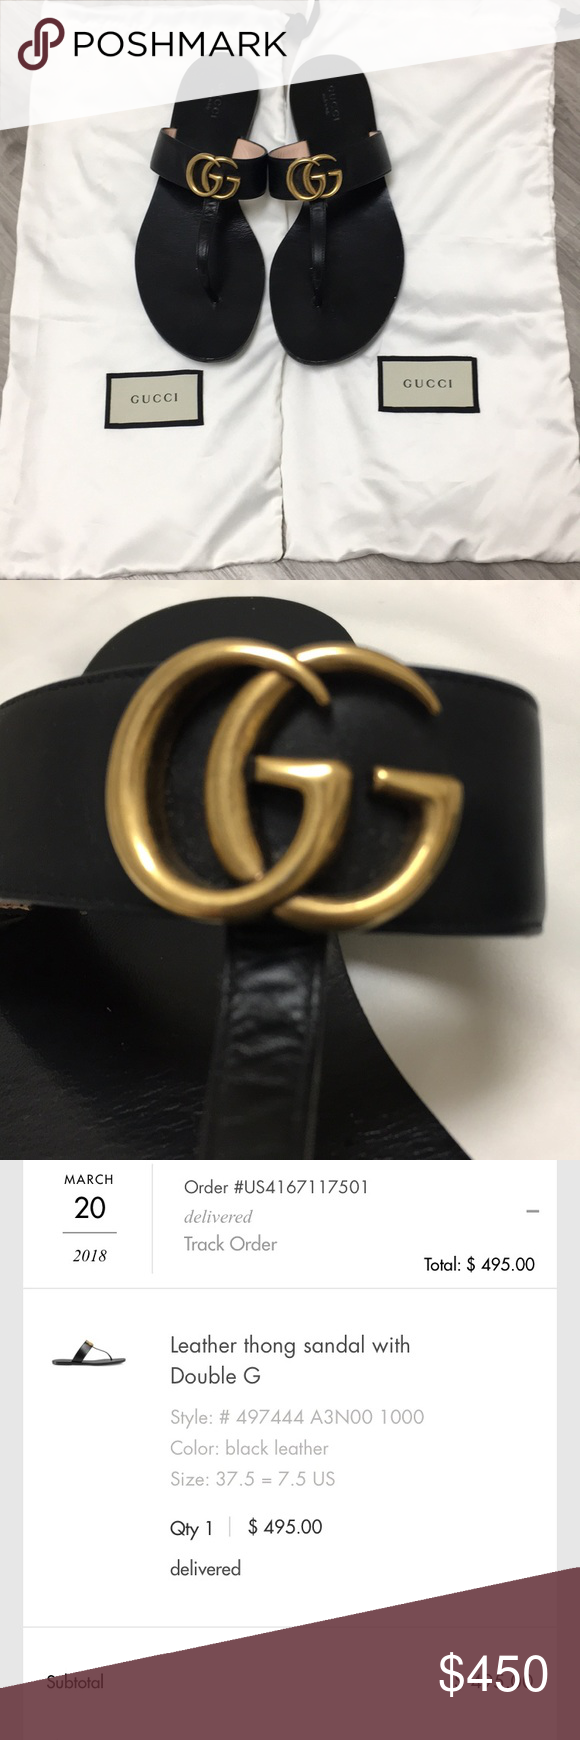 7f4e8d6be5fe12 AUTHENTIC GUCCI SANDALS - in stores now Bought from Gucci.com in 2018. Great